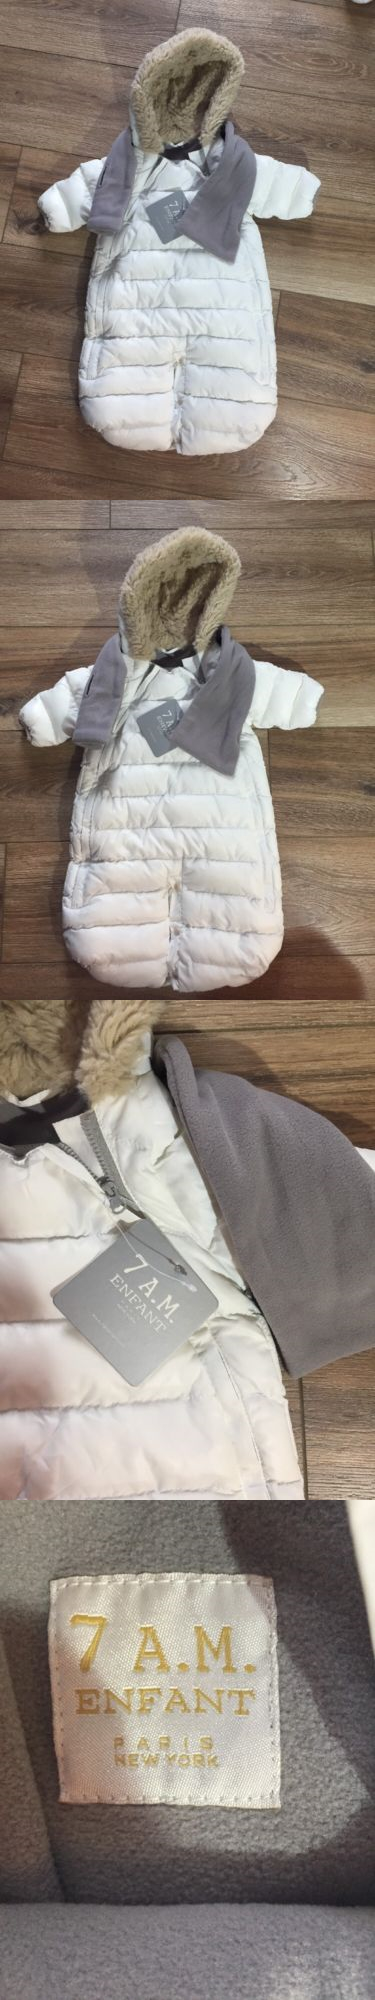 bfd13196e24b1e Other Baby and Toddler Clothing 1070  7Am Enfant Doudoune One Piece Infant  Snowsuit Bunting